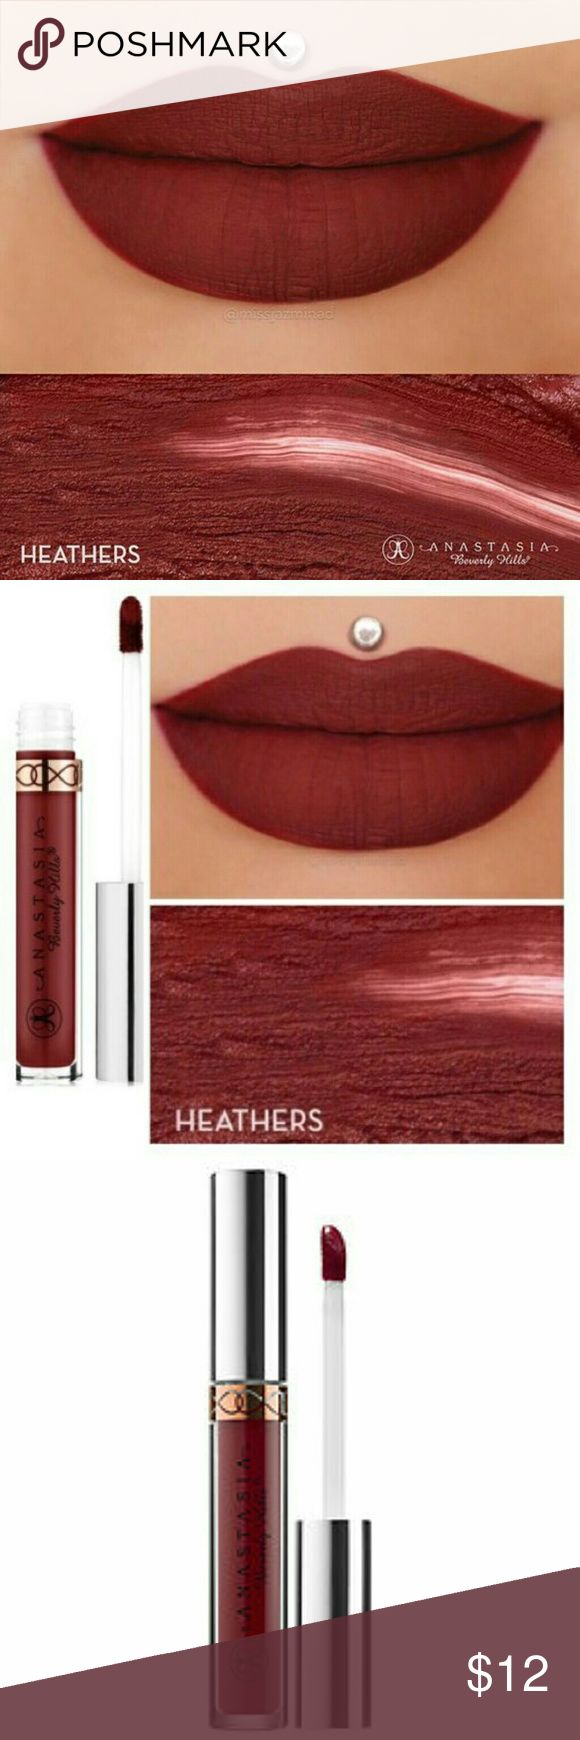 Anastasia Beverly Hills Heathers Liquid Lipstick CHECK OUT MY CLOSET FOR MORE ITEMS!  New  Never Used  Anastasia Beverly Hills Matte Liquid Lipstick  Color: Heathers Anastasia Beverly Hills Makeup Lipstick